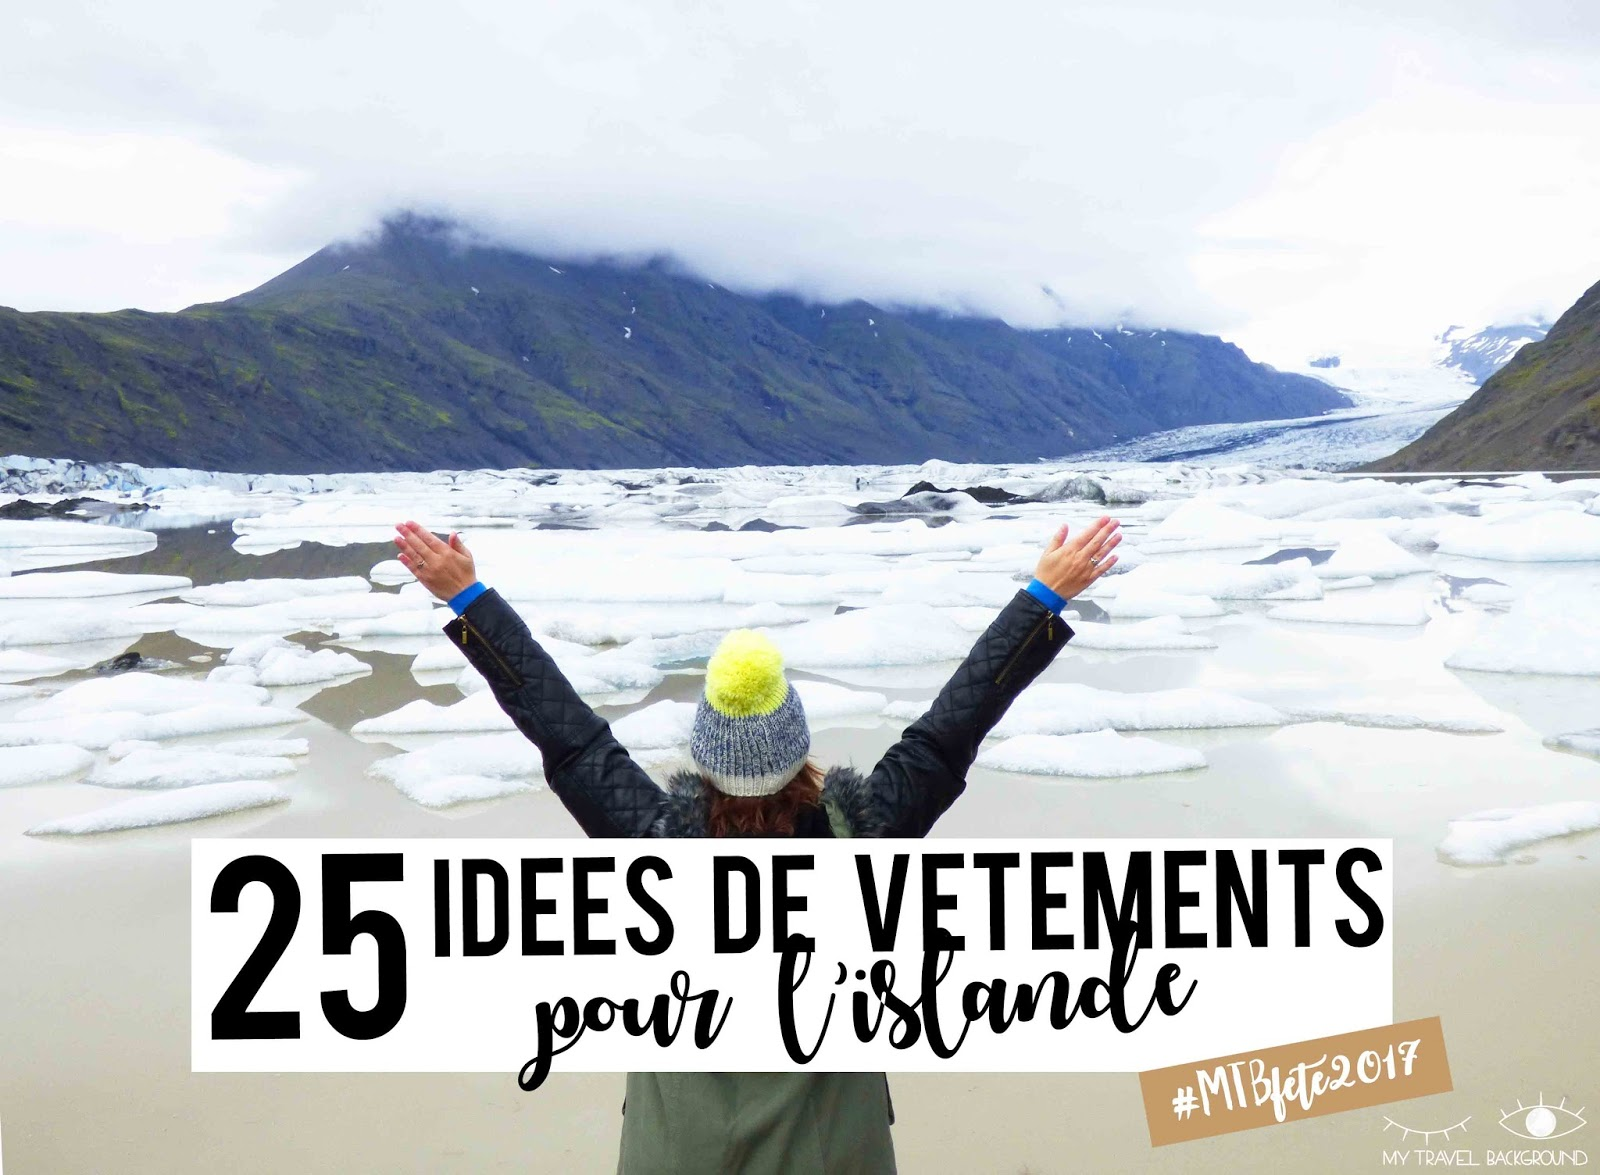 My Travel Background : 25 idées de vêtements pour voyager en Islande